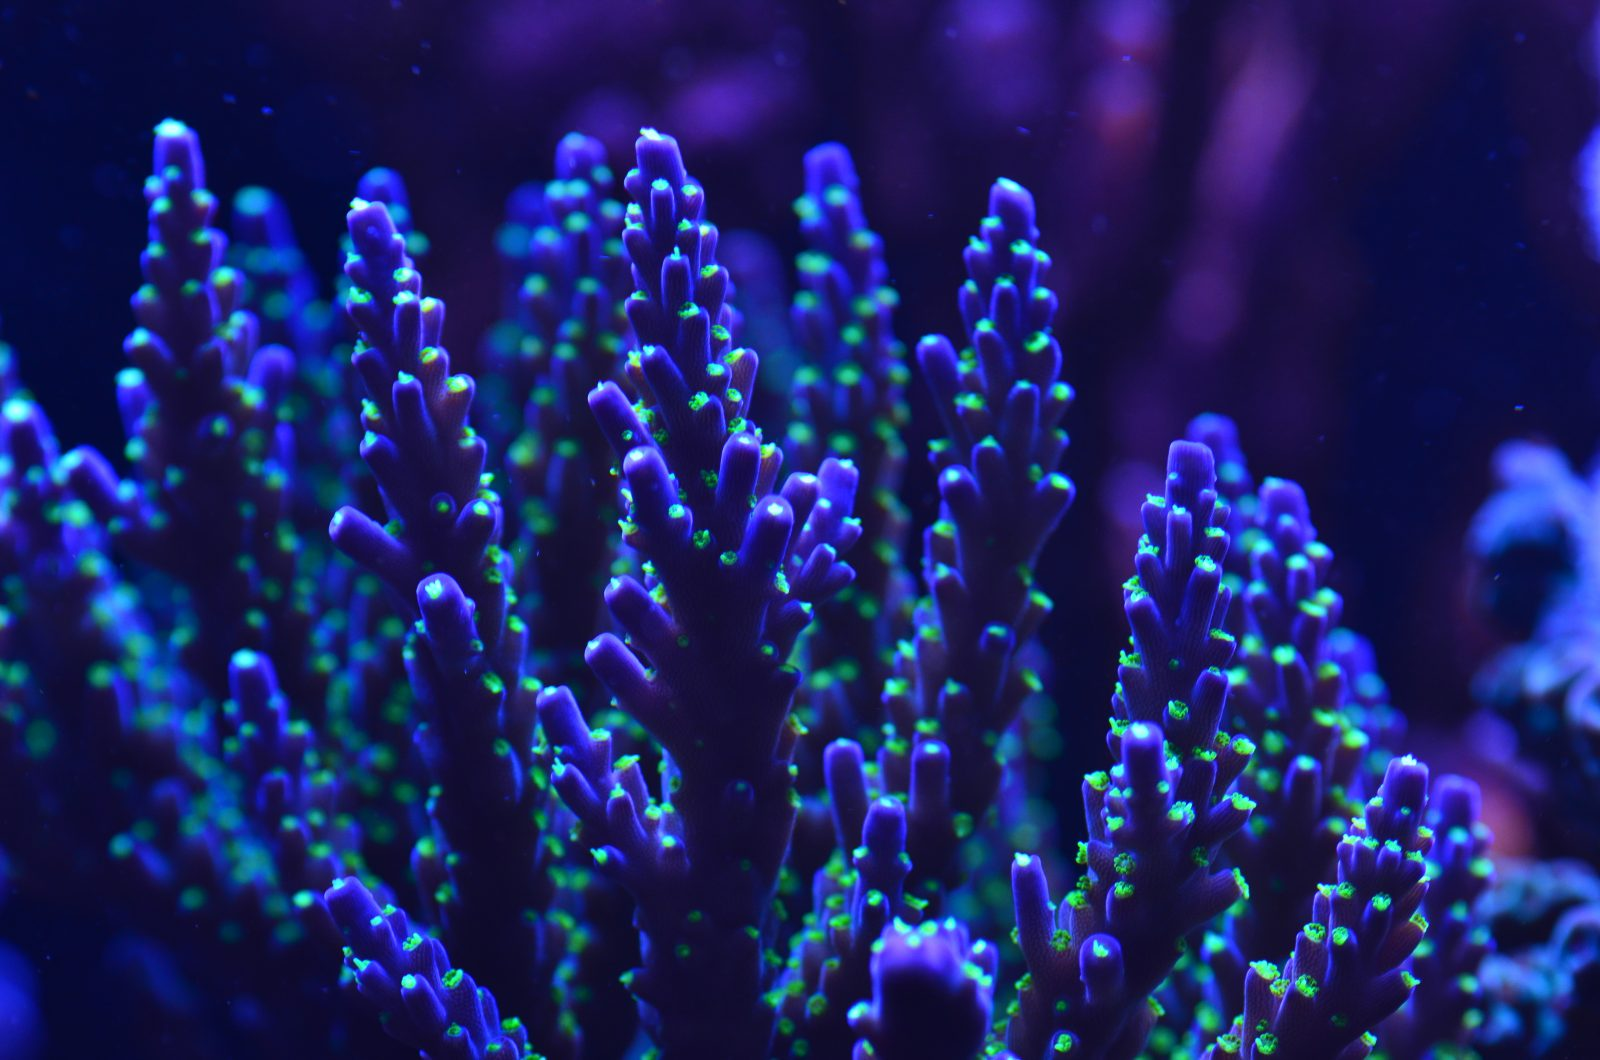 Dark-blue-sps-coral-macro-foto-led-light